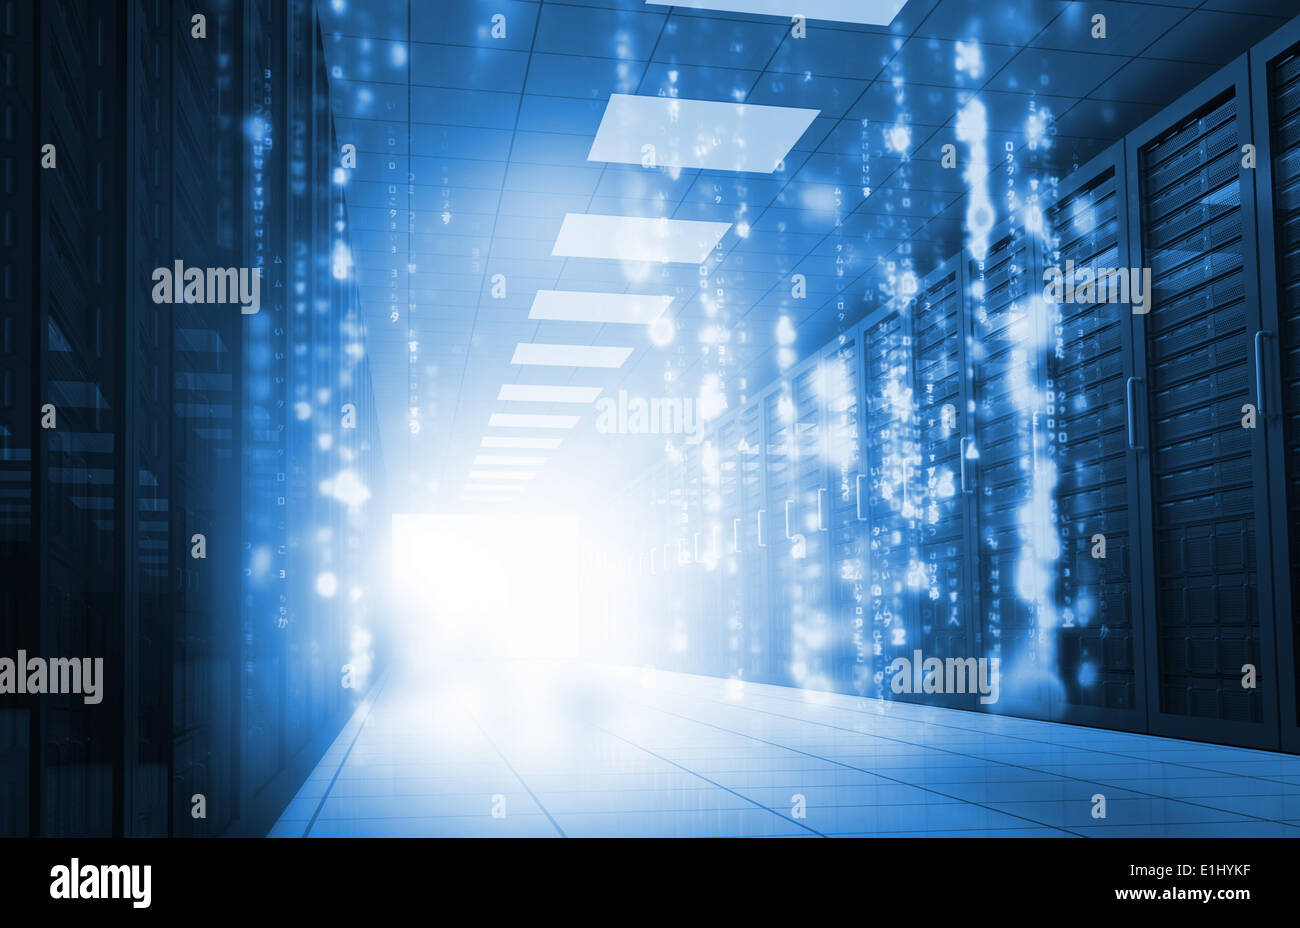 Matrix falling in data center - Stock Image